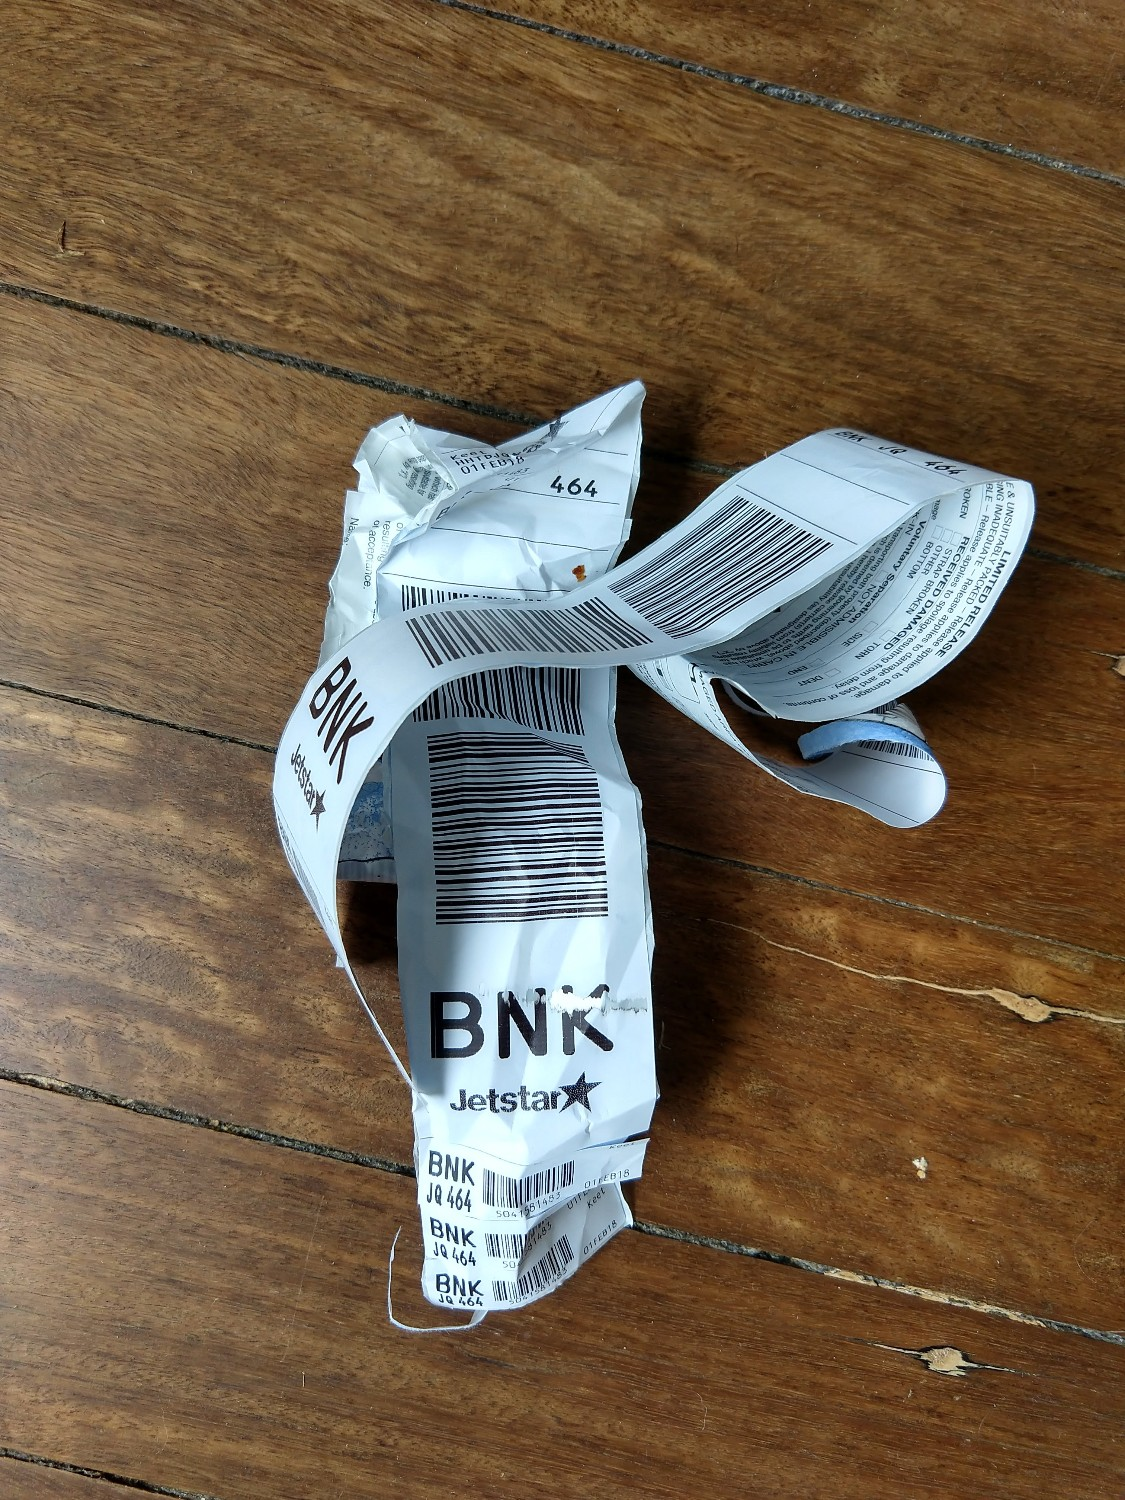 Luggage tags are THE worst! -